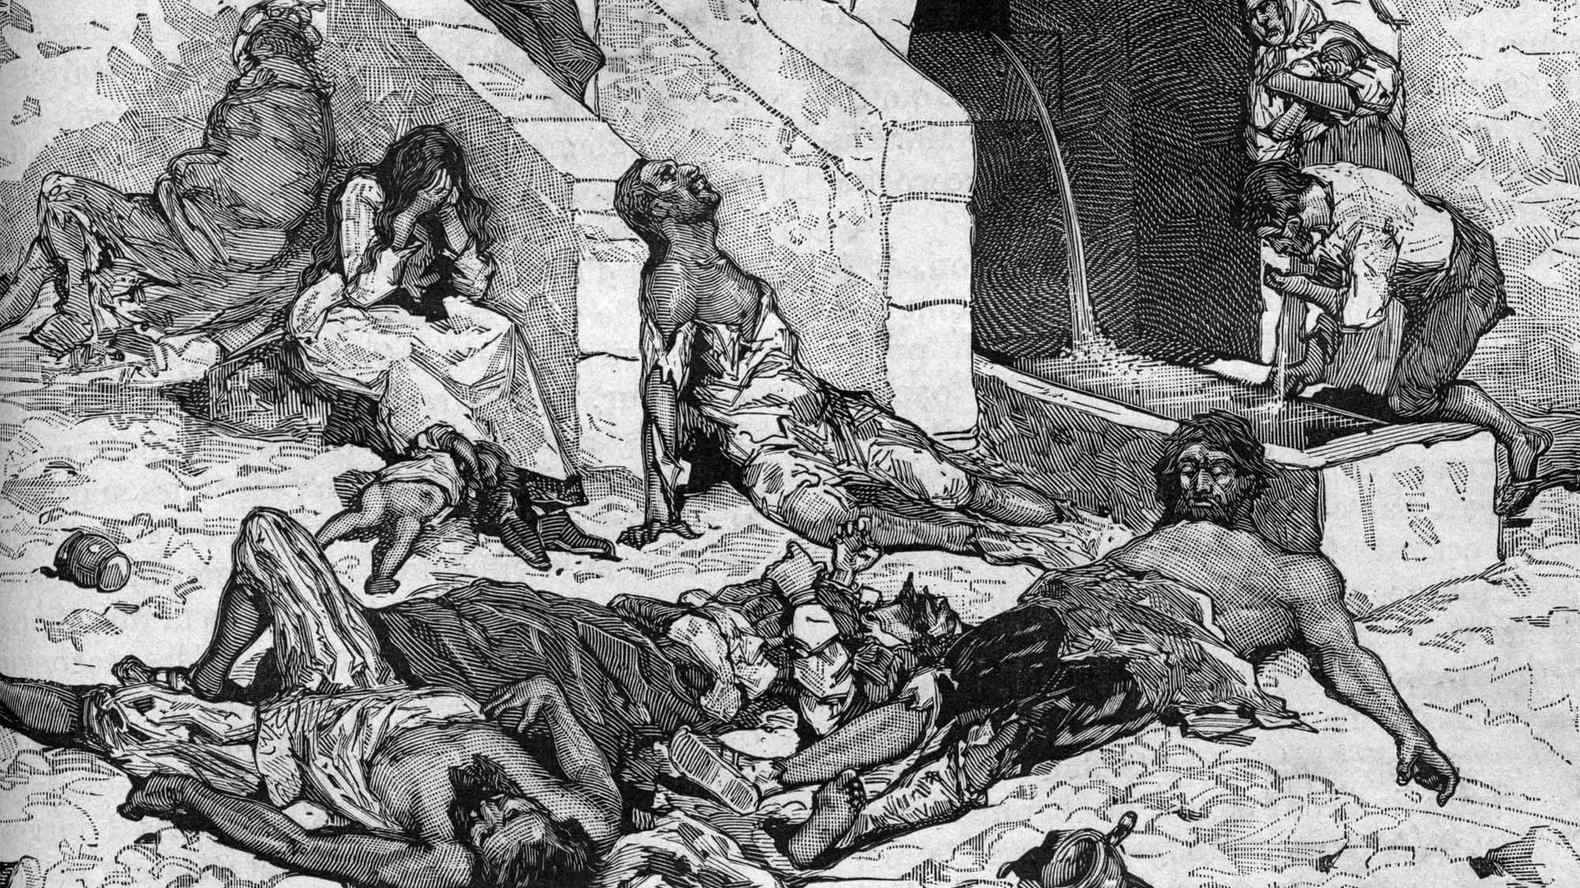 an analysis of the black deaths influence on medieval society The black death's impact on business its full due, but emphasizes the variety of the plague's impact from merchant to merchant, industry to industry, and city to city success or failure was equally possible after the black death and the game favored adaptability, creativity, nimbleness, opportunity, and foresight.